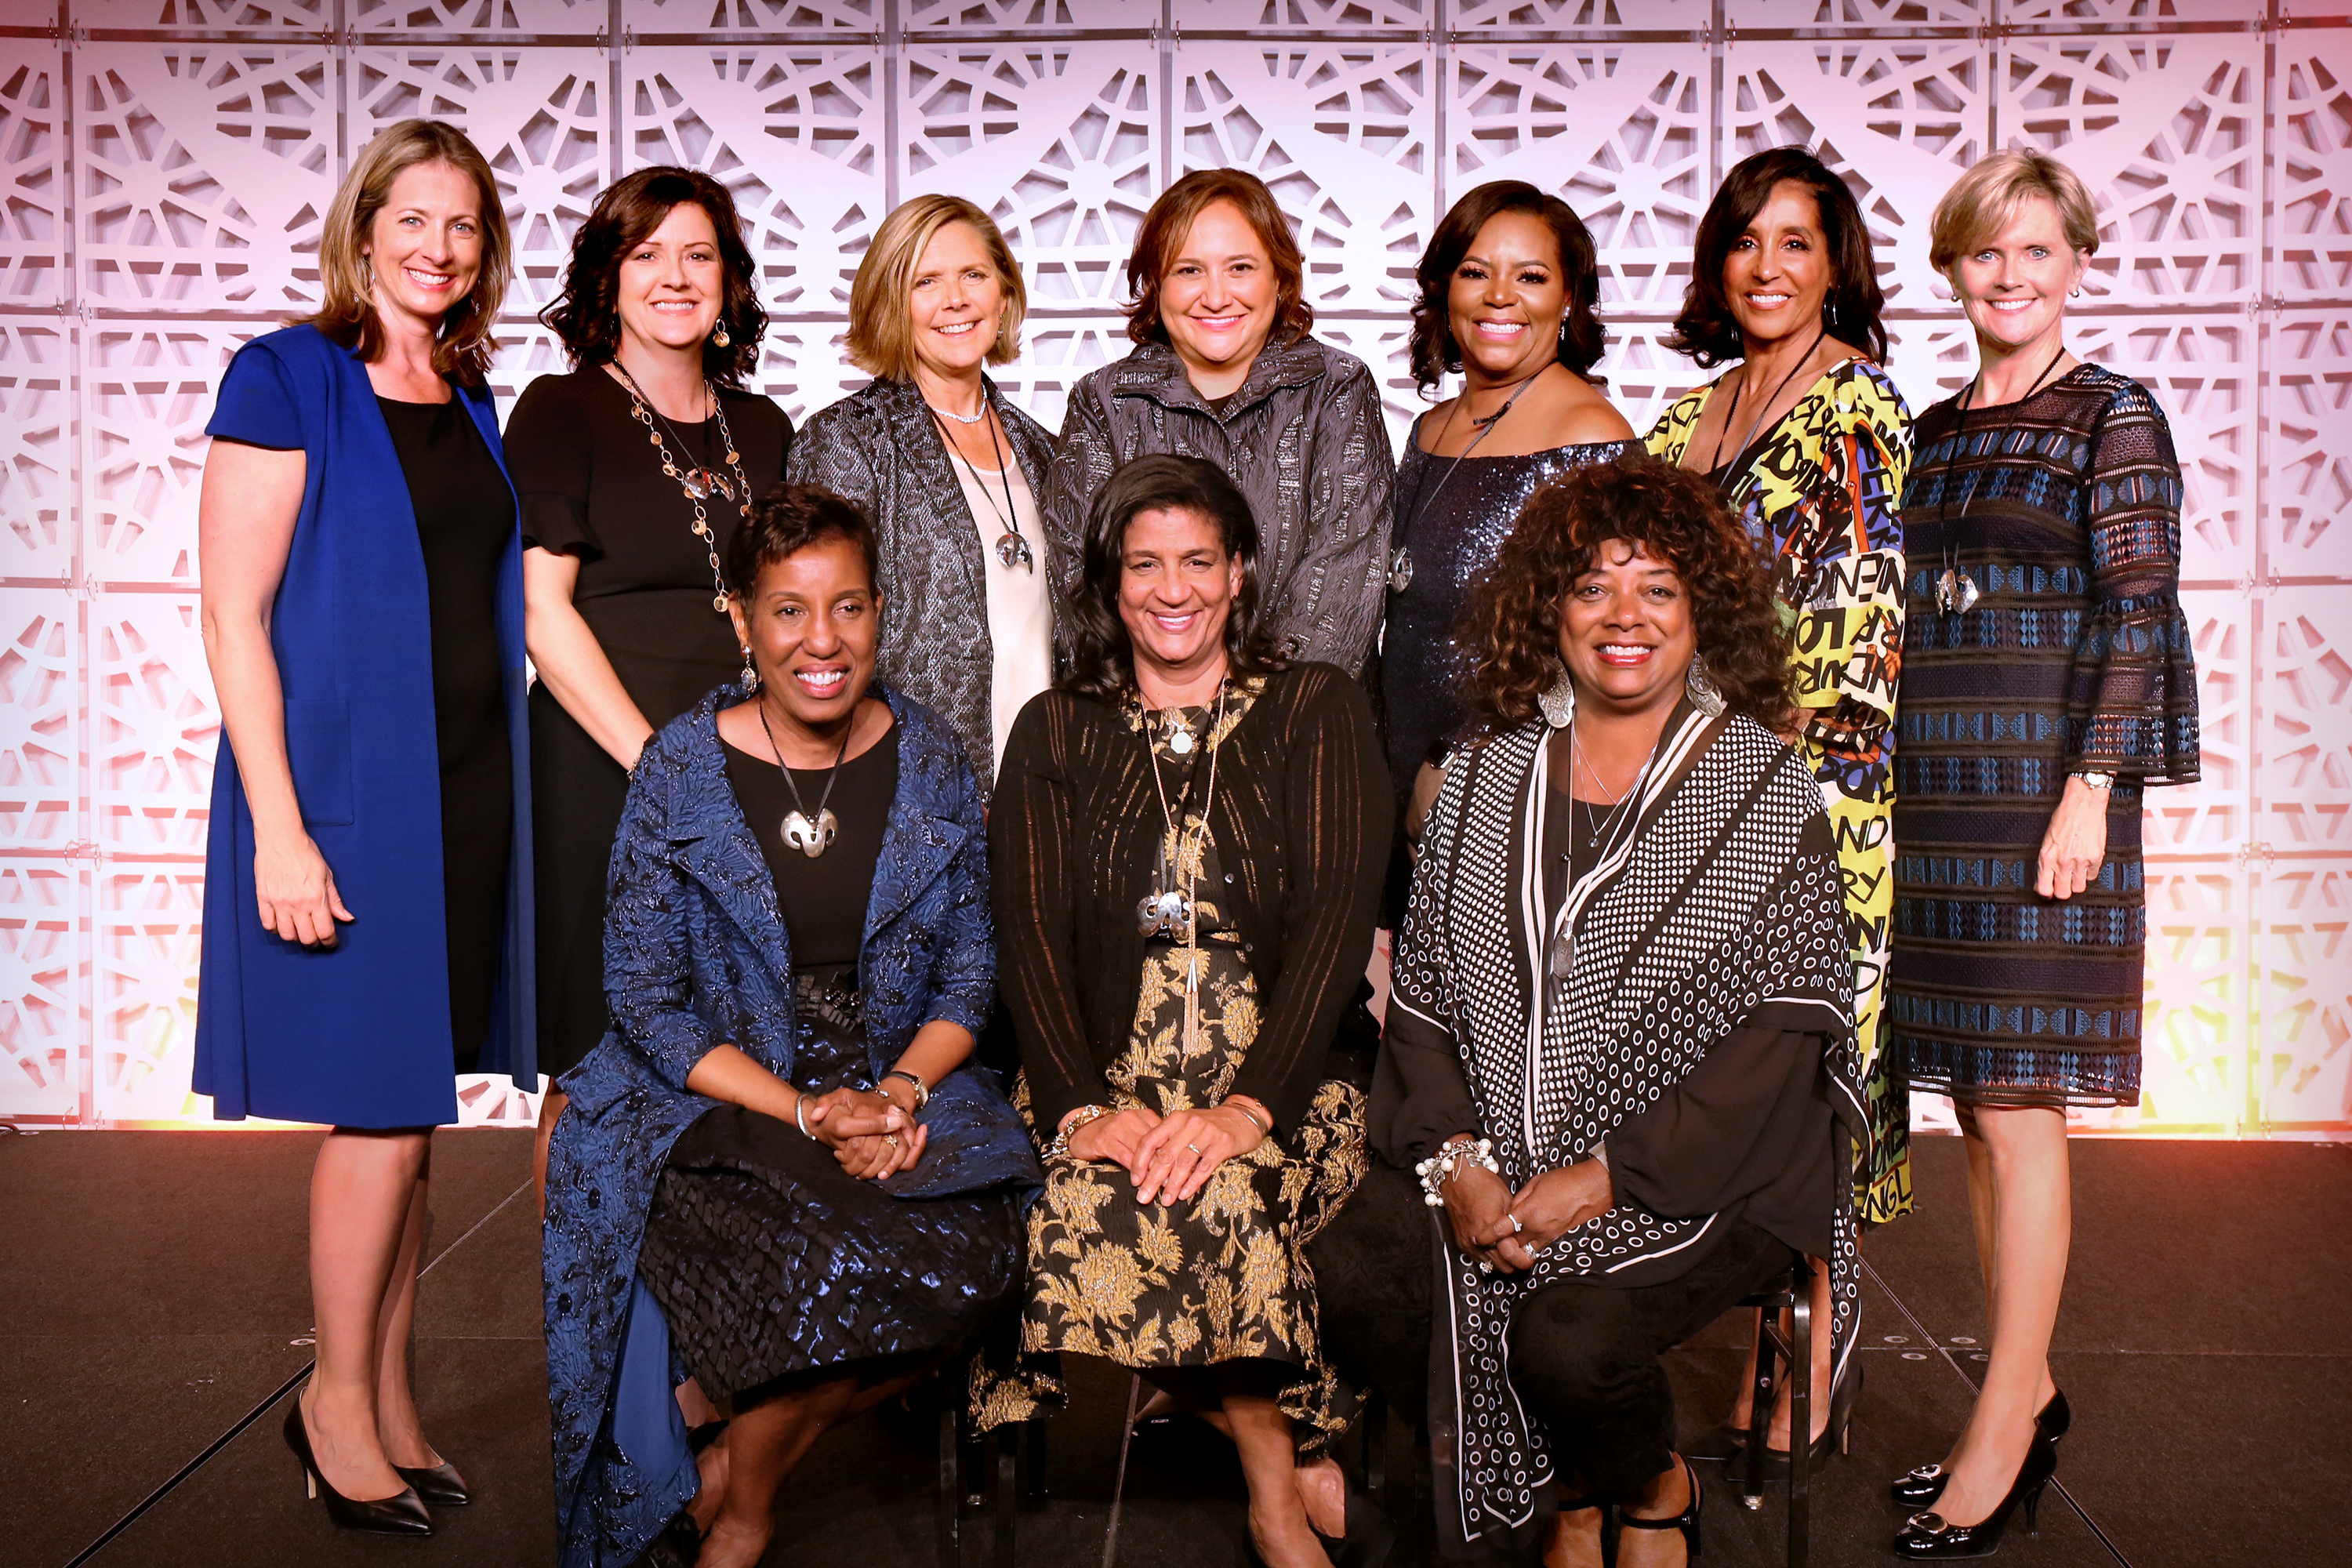 2019 AWA Honorees with Co-Chairs S & R